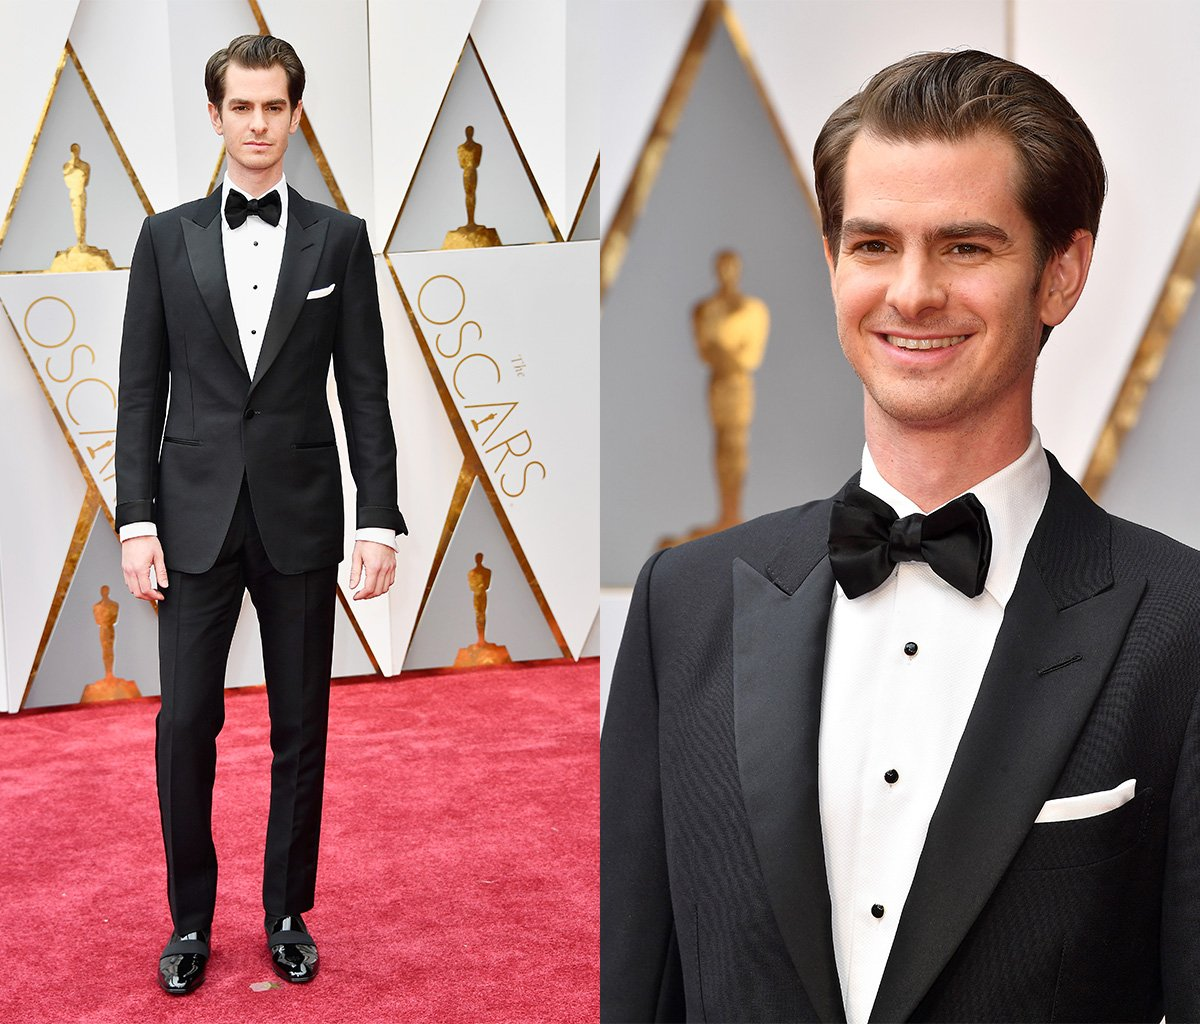 RT @InStyleMag: Nominated for @HacksawRidge, #AndrewGarfield is looking mighty dapper #Oscars https://t.co/bHlCq0FRMU